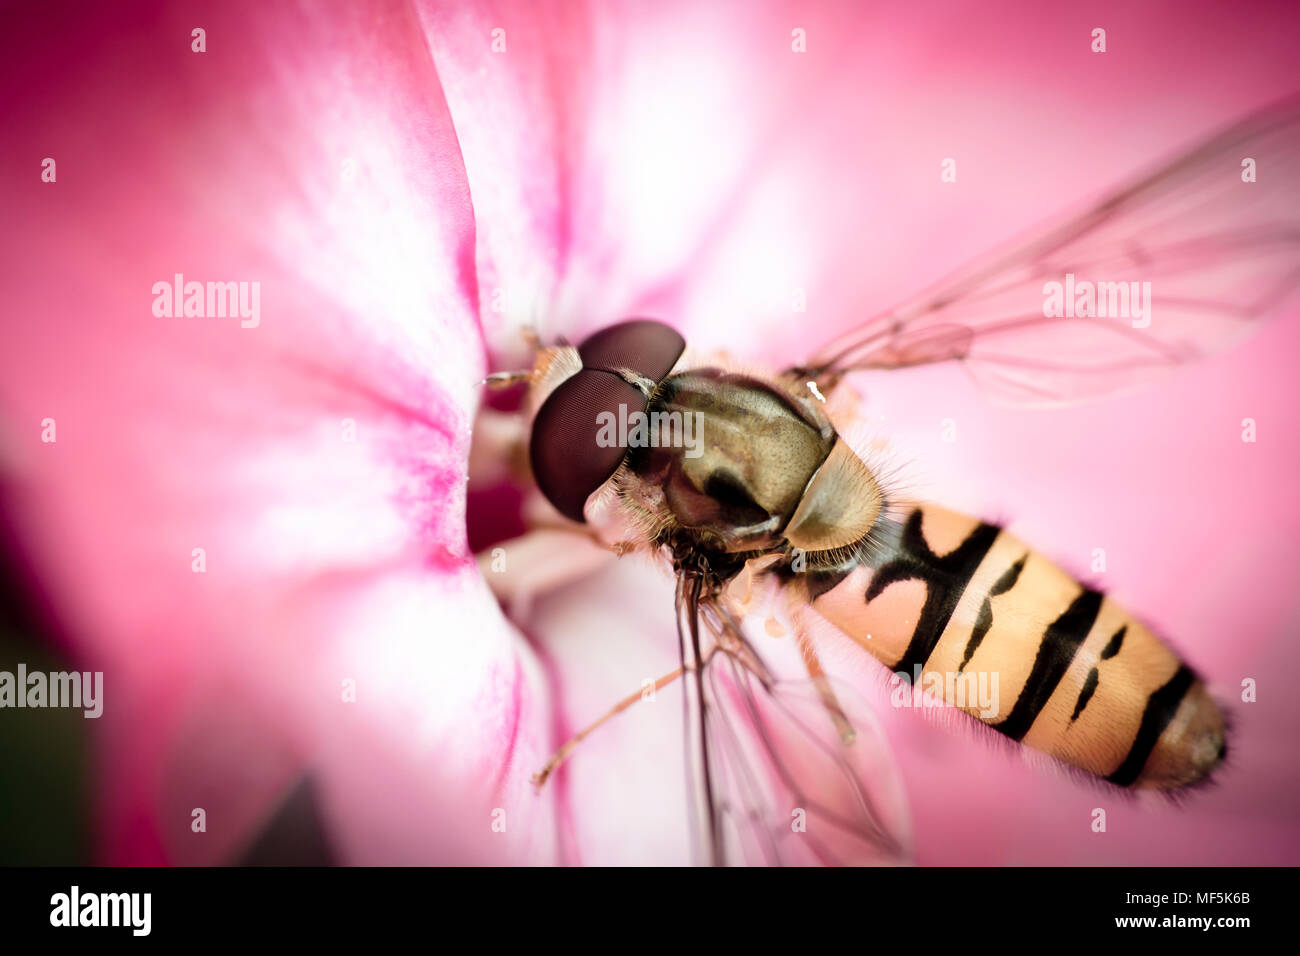 Hoverfly, Syrphidae on blossom - Stock Image